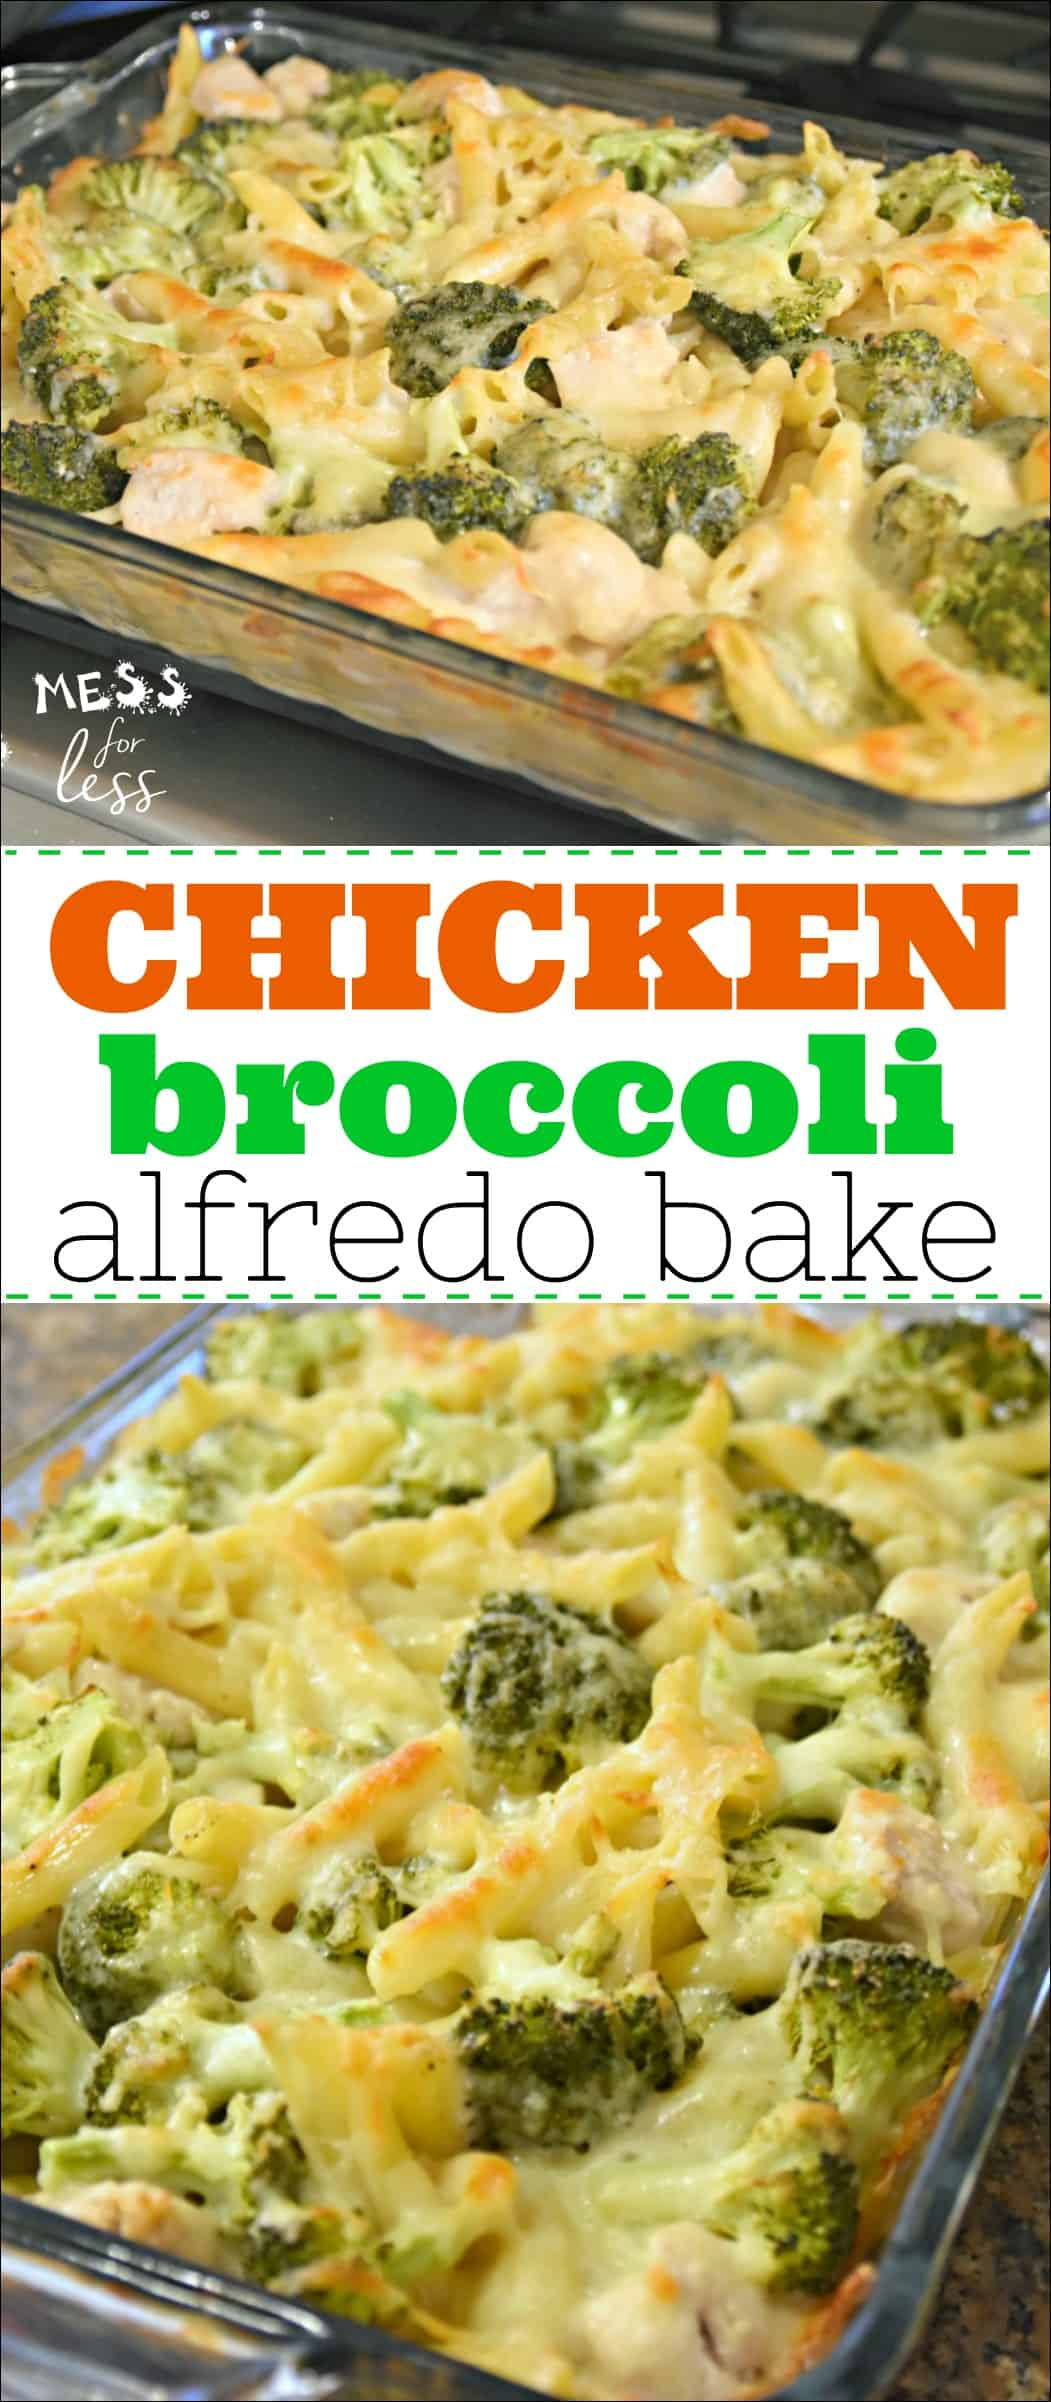 This Chicken Broccoli Alfredo Bake is a favorite in my family. It is simple and straightforward to make, as most comfort food is, and is a great way to get kids eating more protein and veggies. The creamy, cheesiness of this dish makes it a hit! #casserole #chickenbroccolialfredobake #recipe #easyrecipe